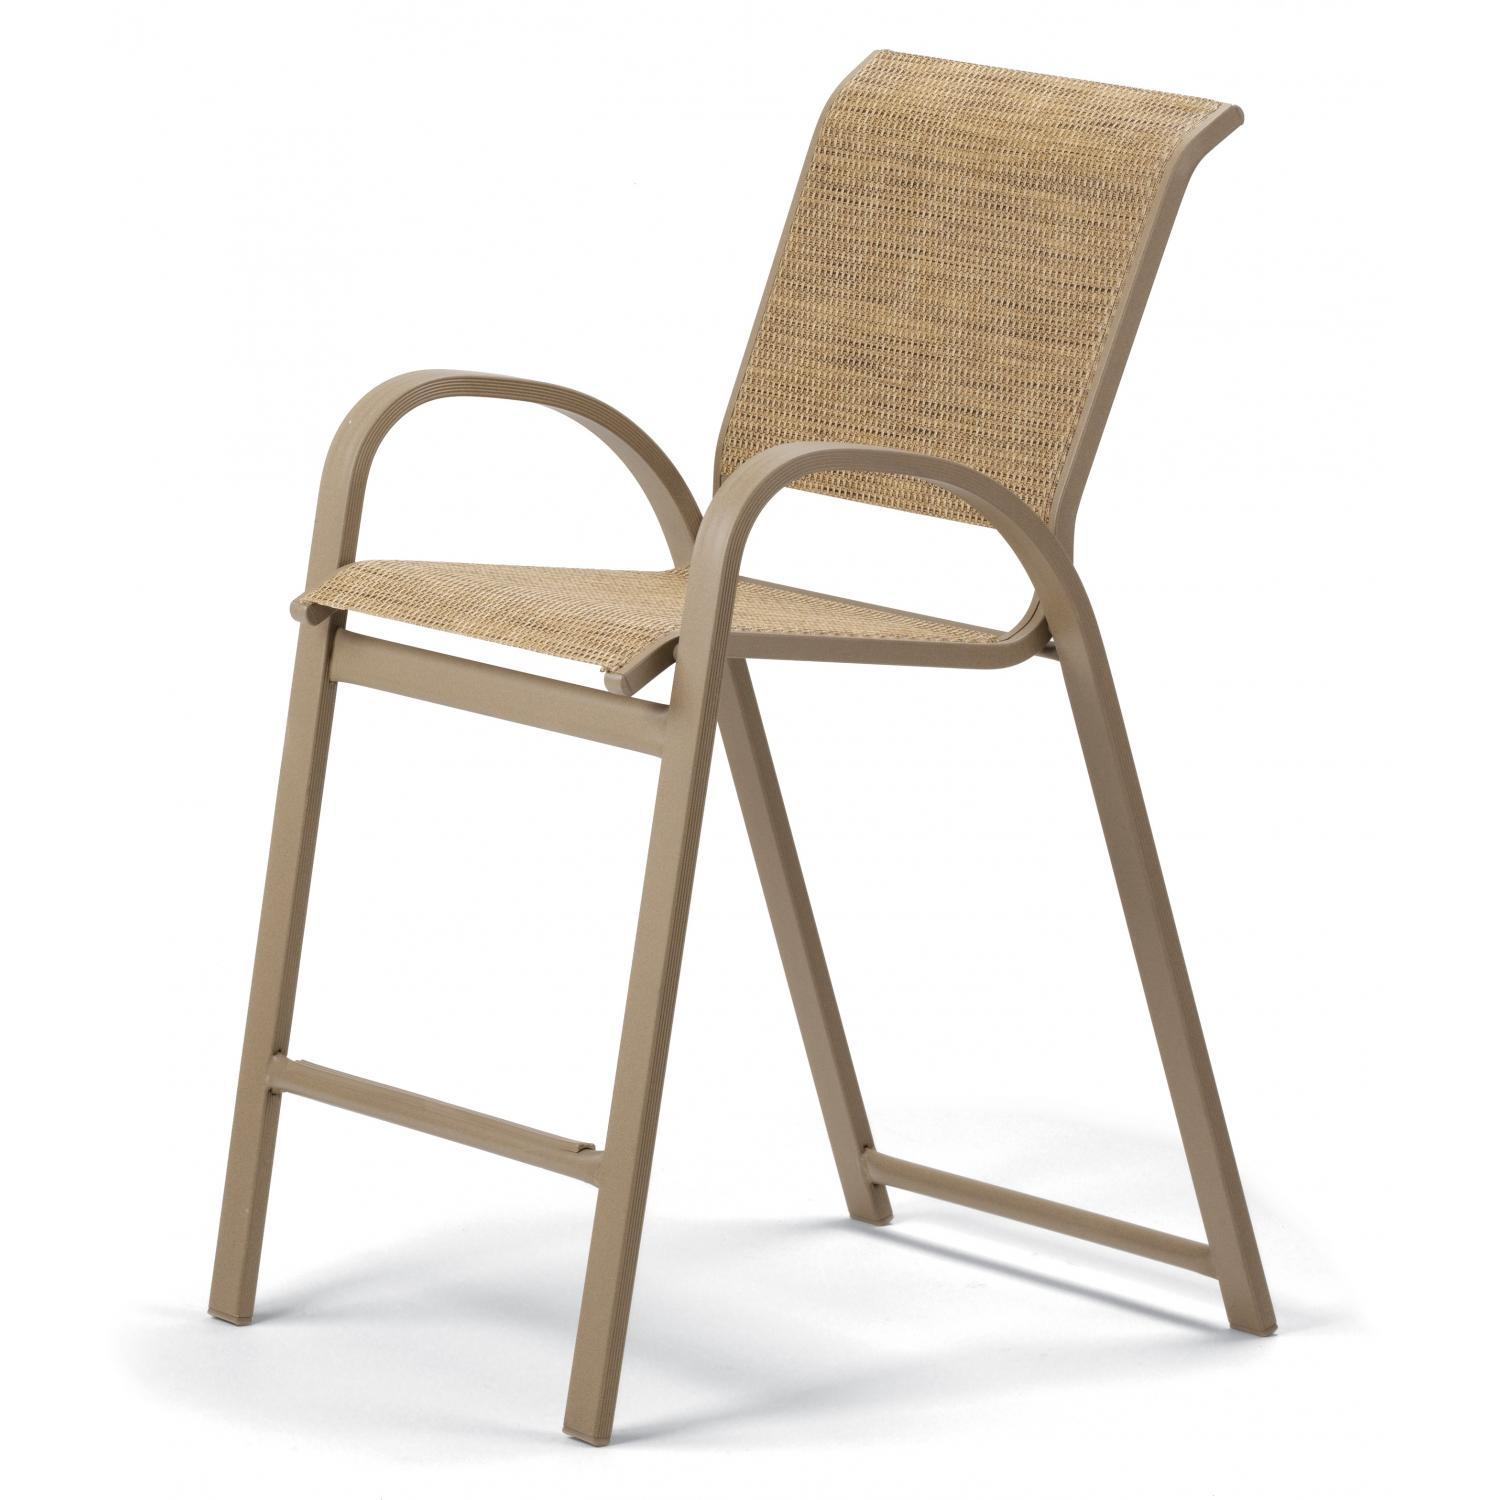 Image of: Classic Sling Patio Chairs